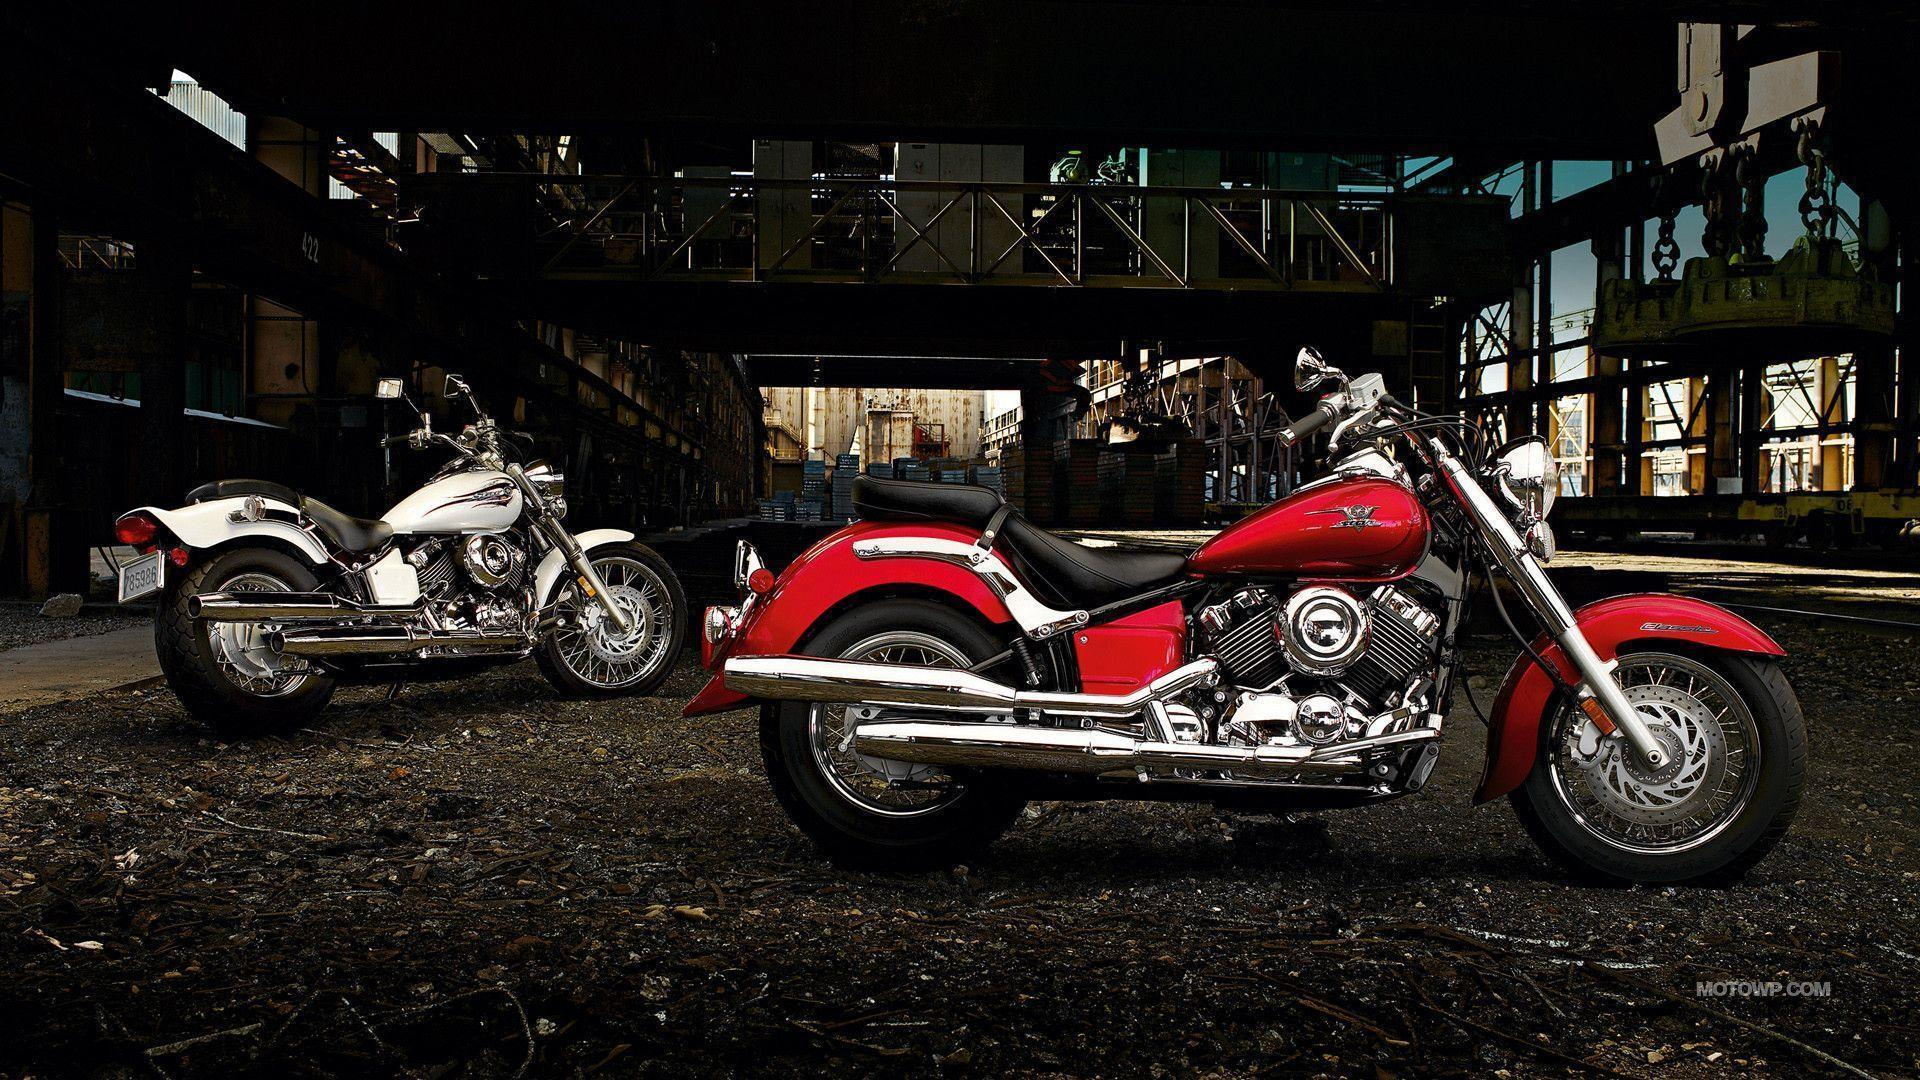 Image For > Classic Motorcycles Wallpapers